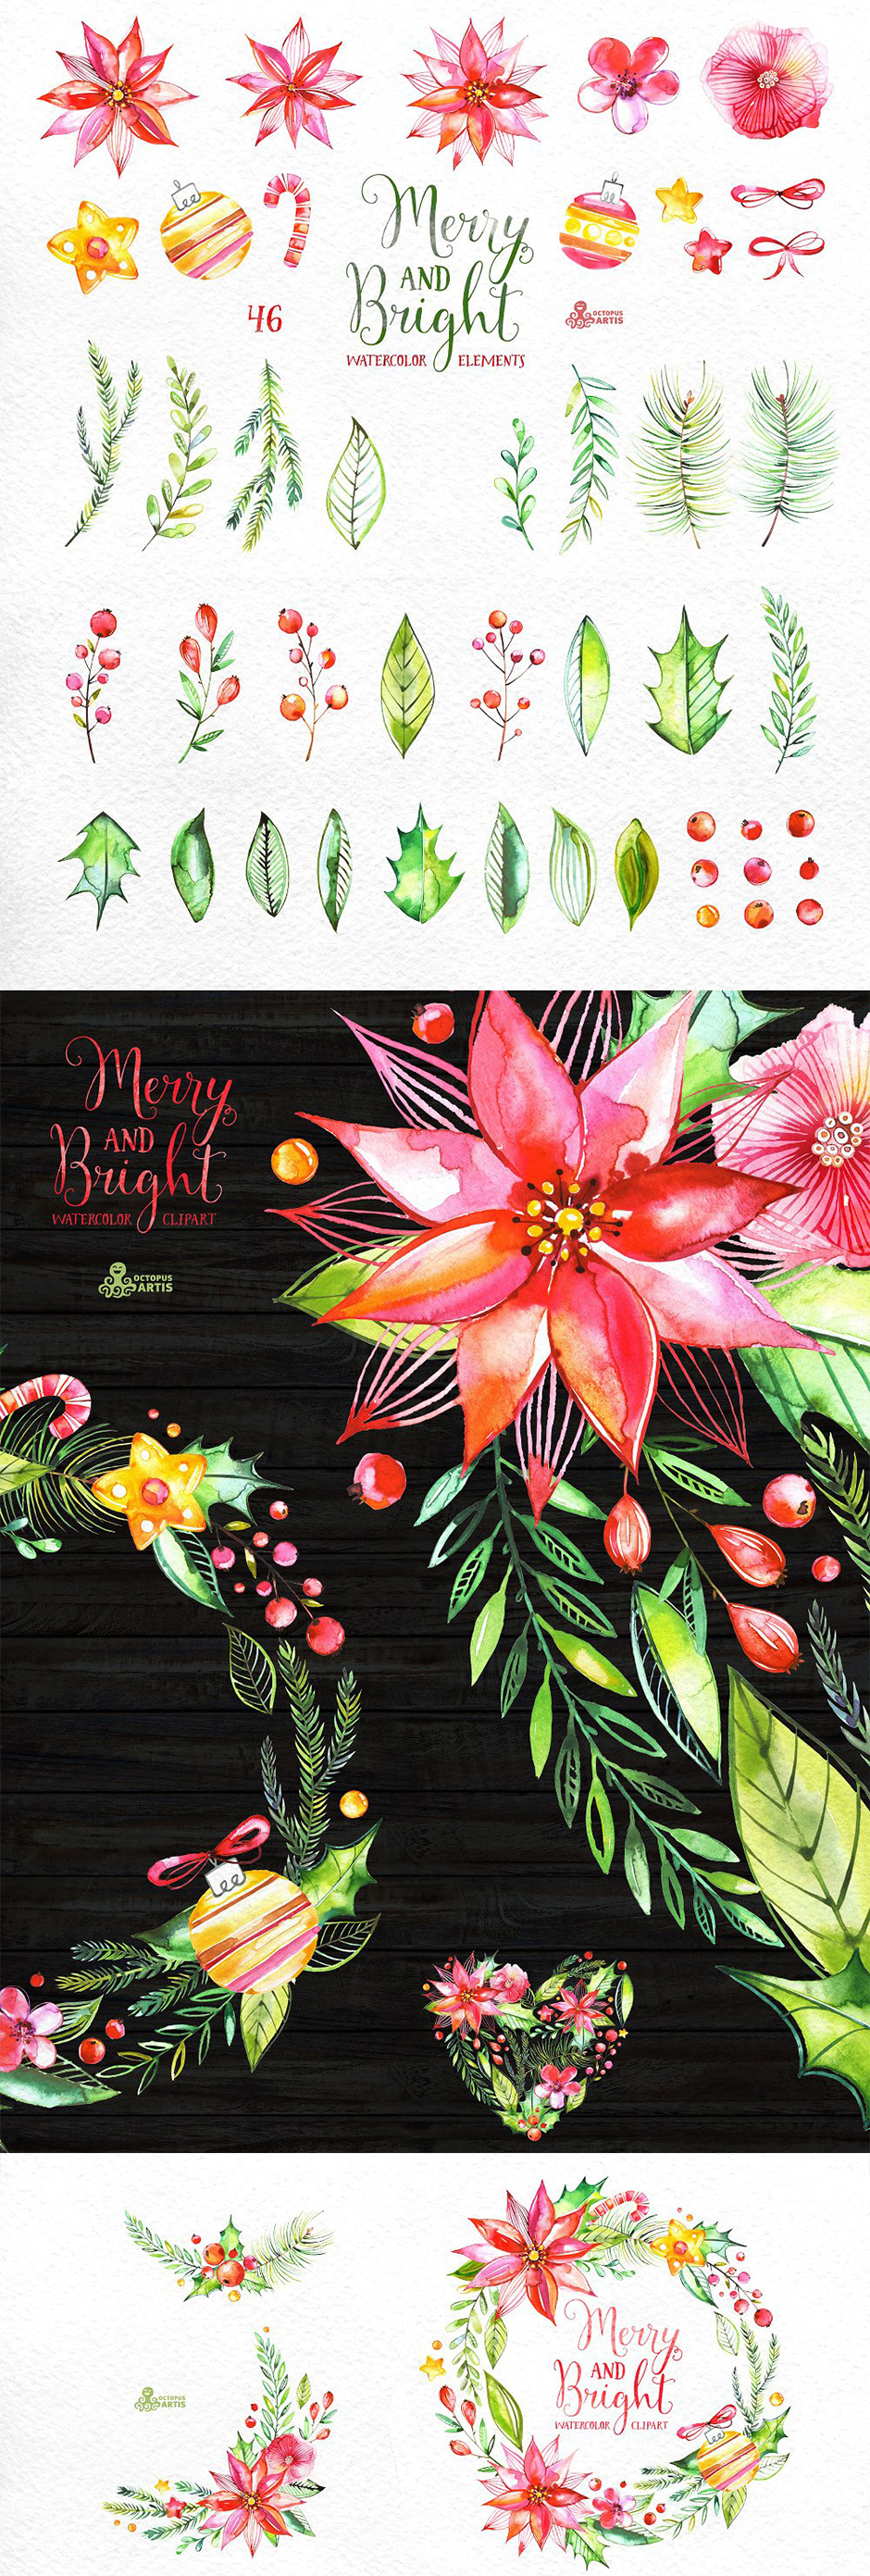 Merry And Bright Watercolor